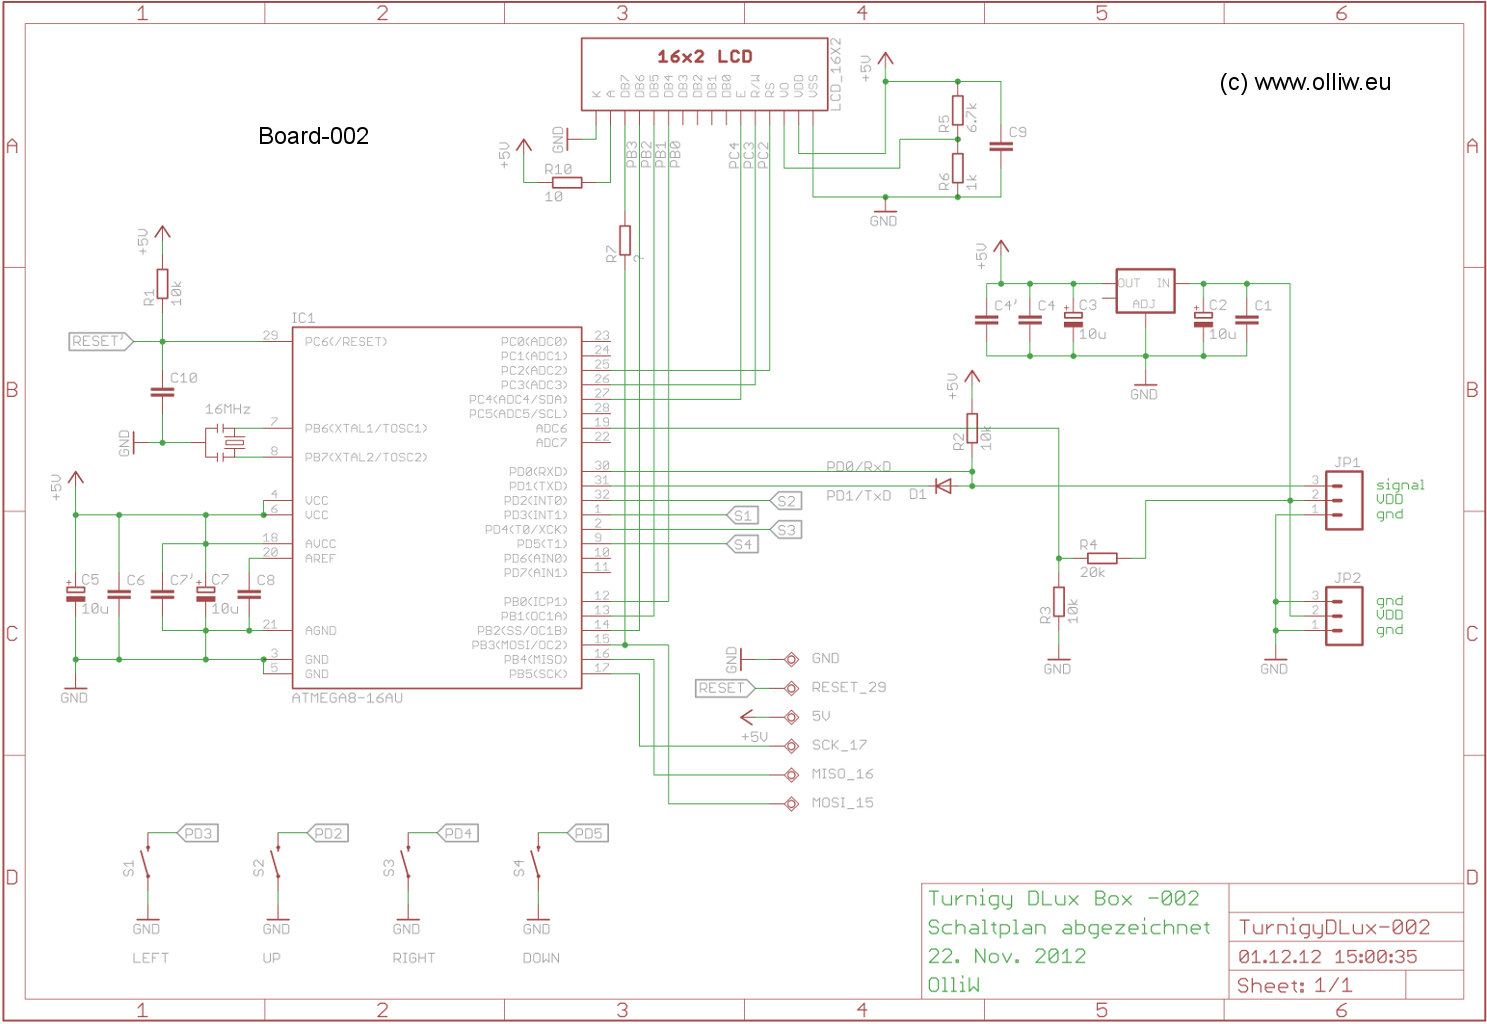 Wiring Diagram Solar Panels 12v furthermore Electrical Staple additionally Security  work Diagram additionally Soft m Atc 4p Wiring Diagram besides Pixhawk Gps Wiring Diagram. on apm wiring diagram